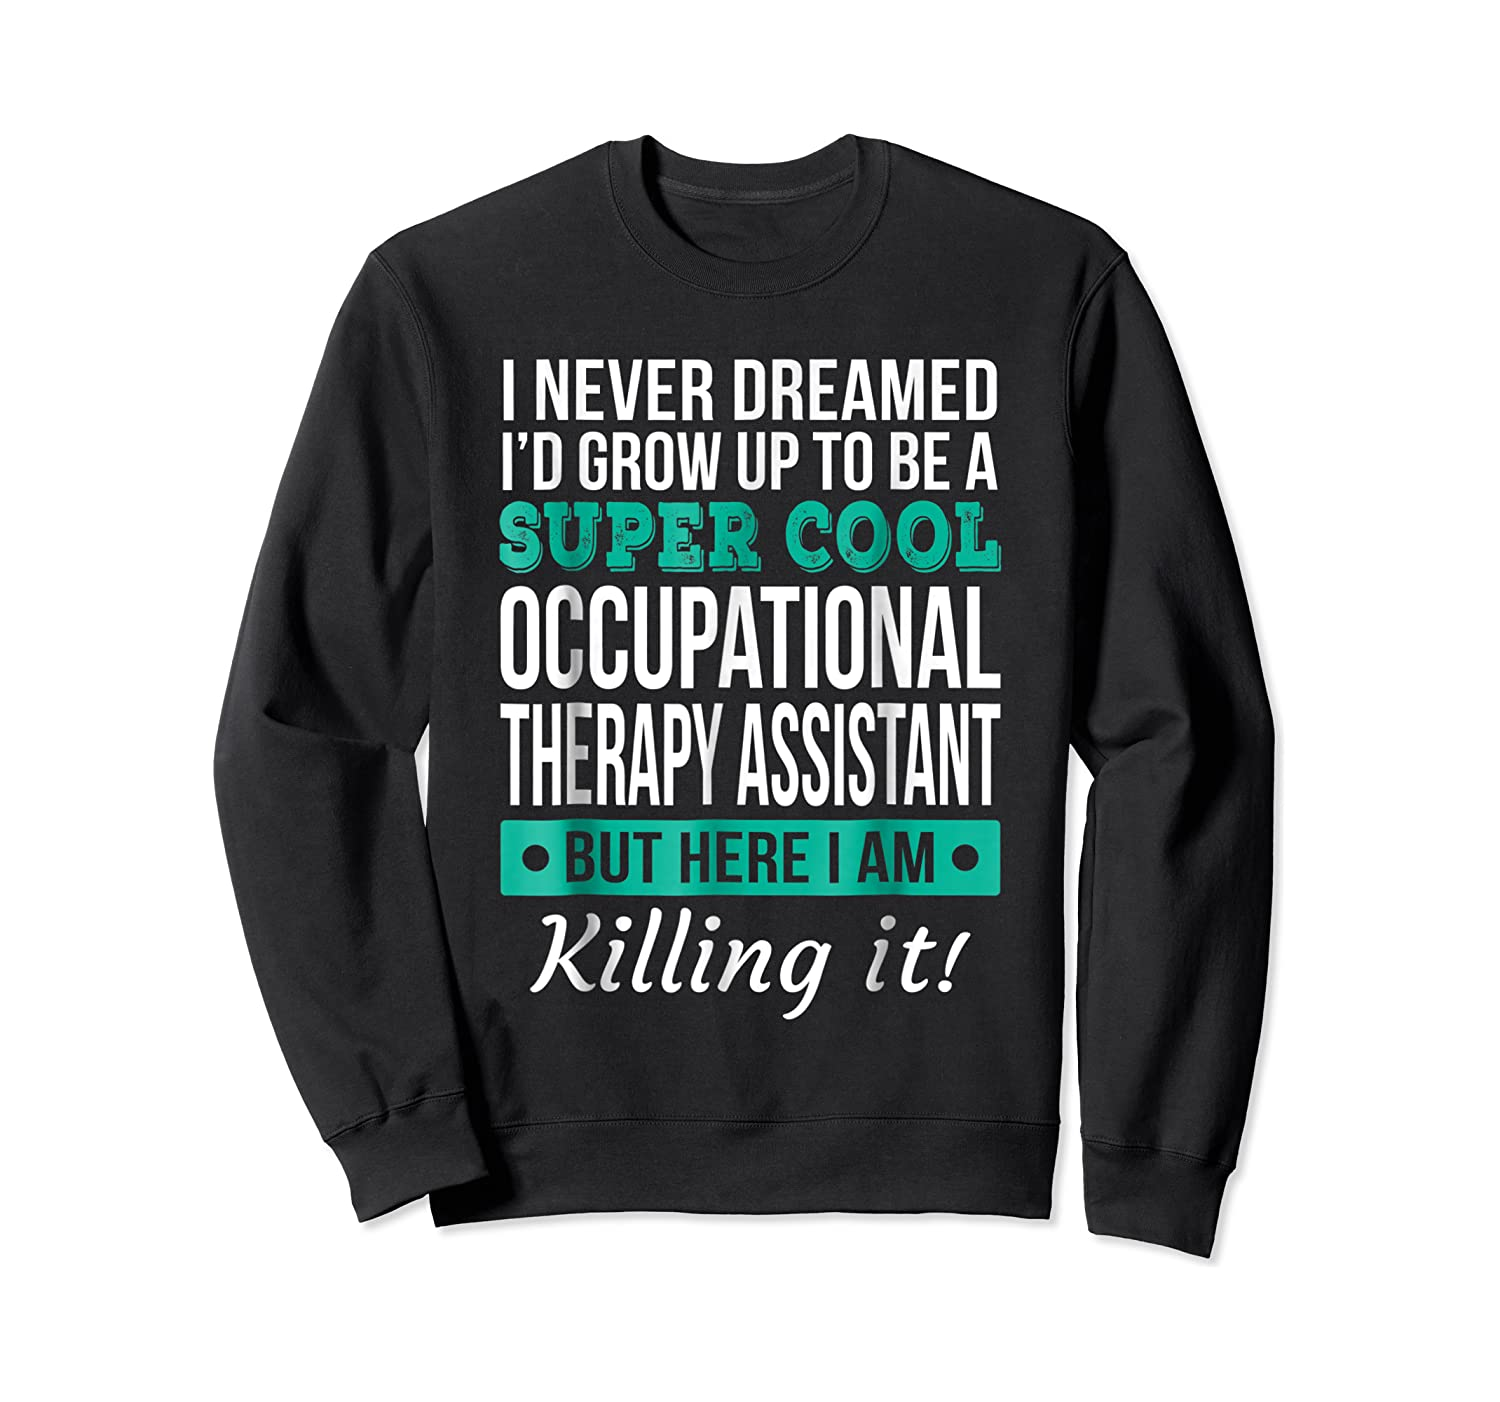 Super Cool Occupational Therapy Assistant T-shirt Funny Gift Crewneck Sweater